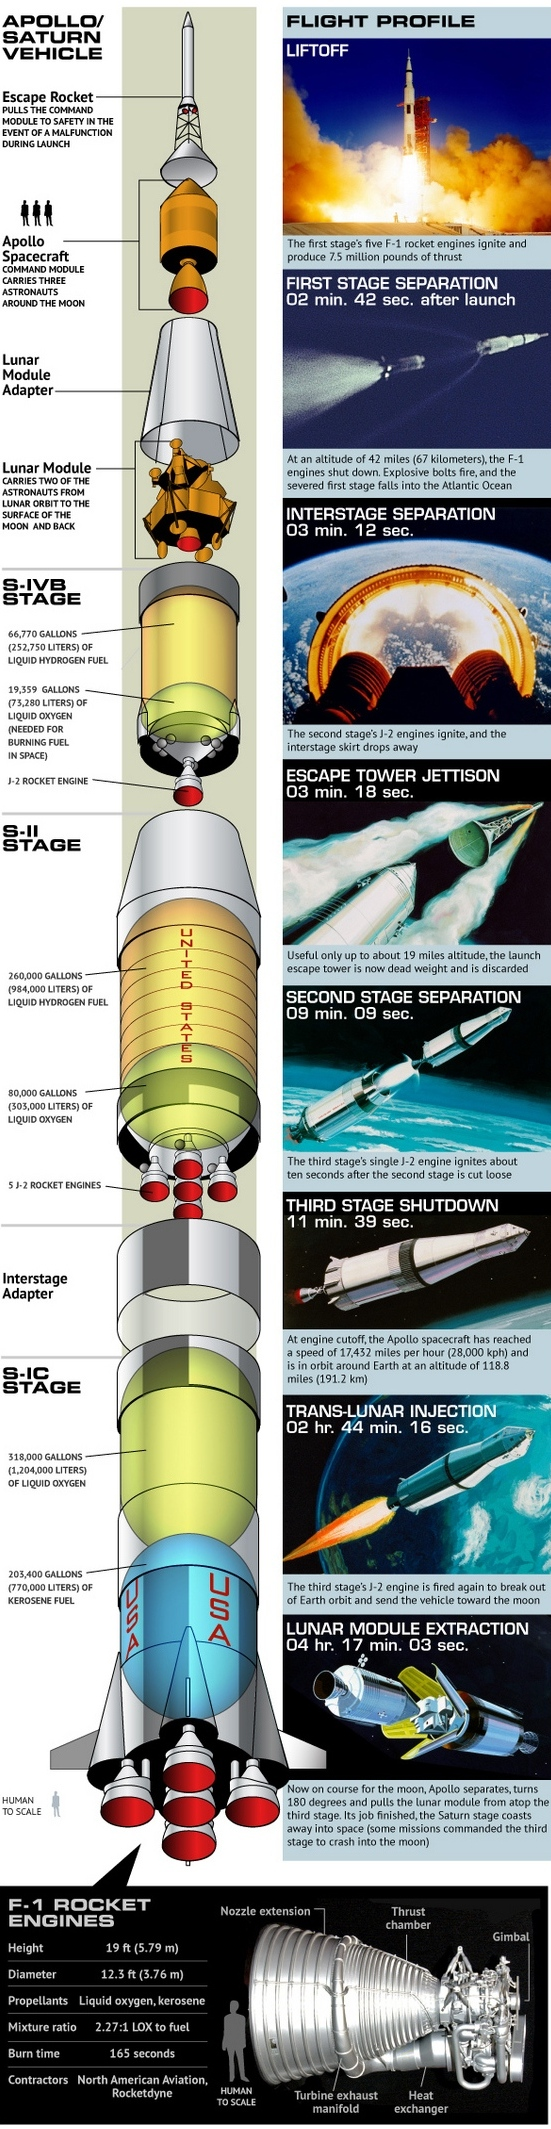 Nasa Apollo Missions Saturn V Engine Diagram It Was The Most Powerful Rocket That Had Ever Flown Successfully Used In Program 1960s And 1970s